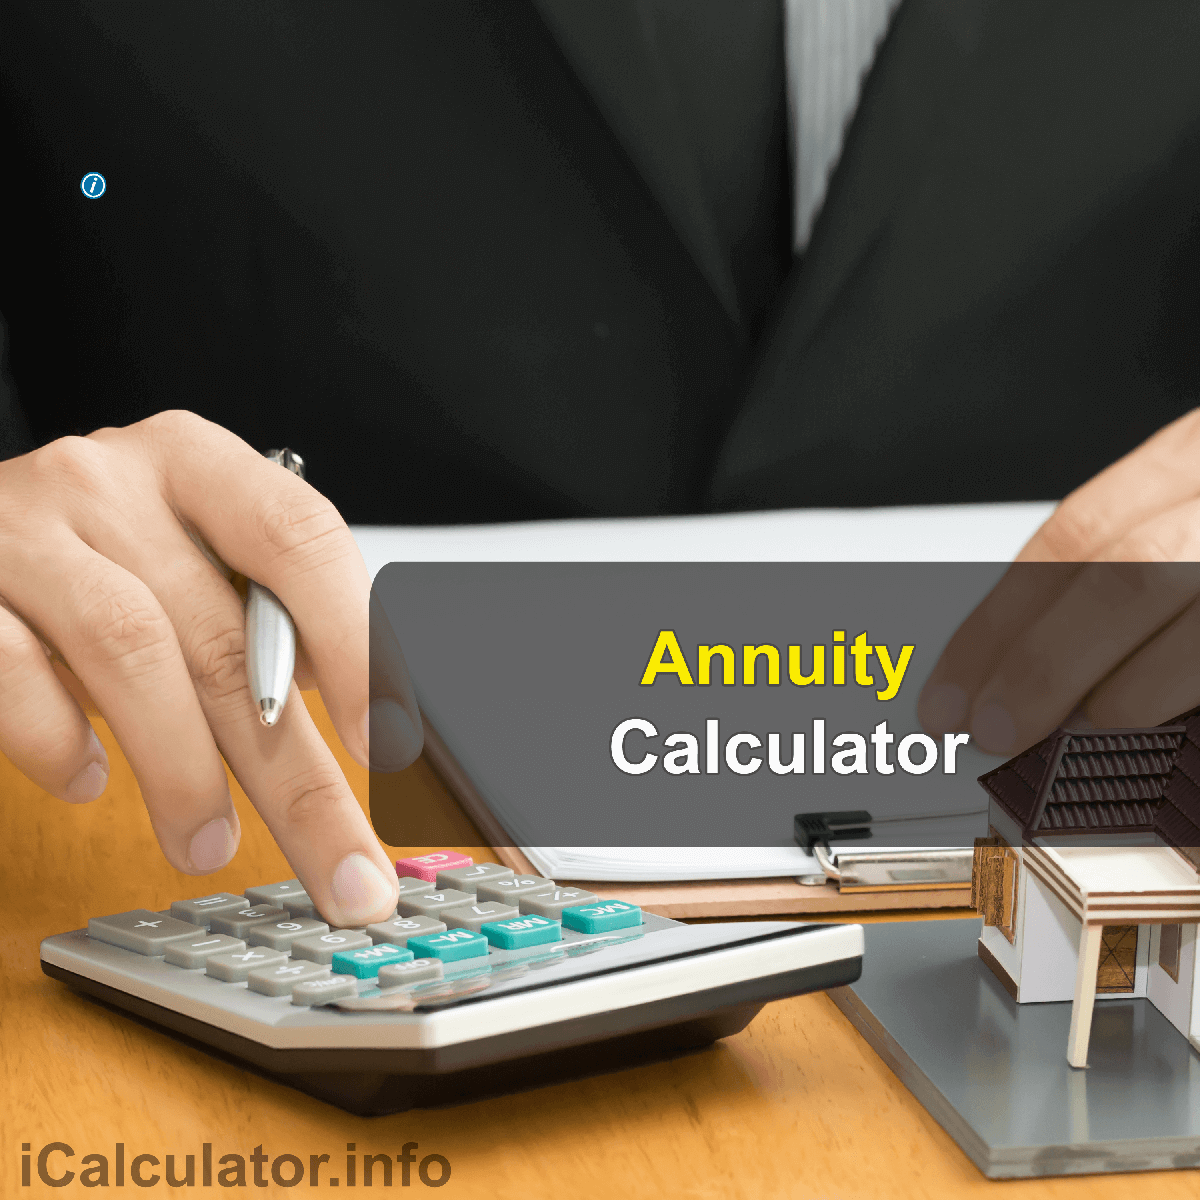 Annuity Calculator. This image provides details of how to calculate annuity using a good calculator and notepad. By using the annuity formula, the Annuity Calculator provides a true calculation of the return on investment of a lump sum with regular monthly contributions